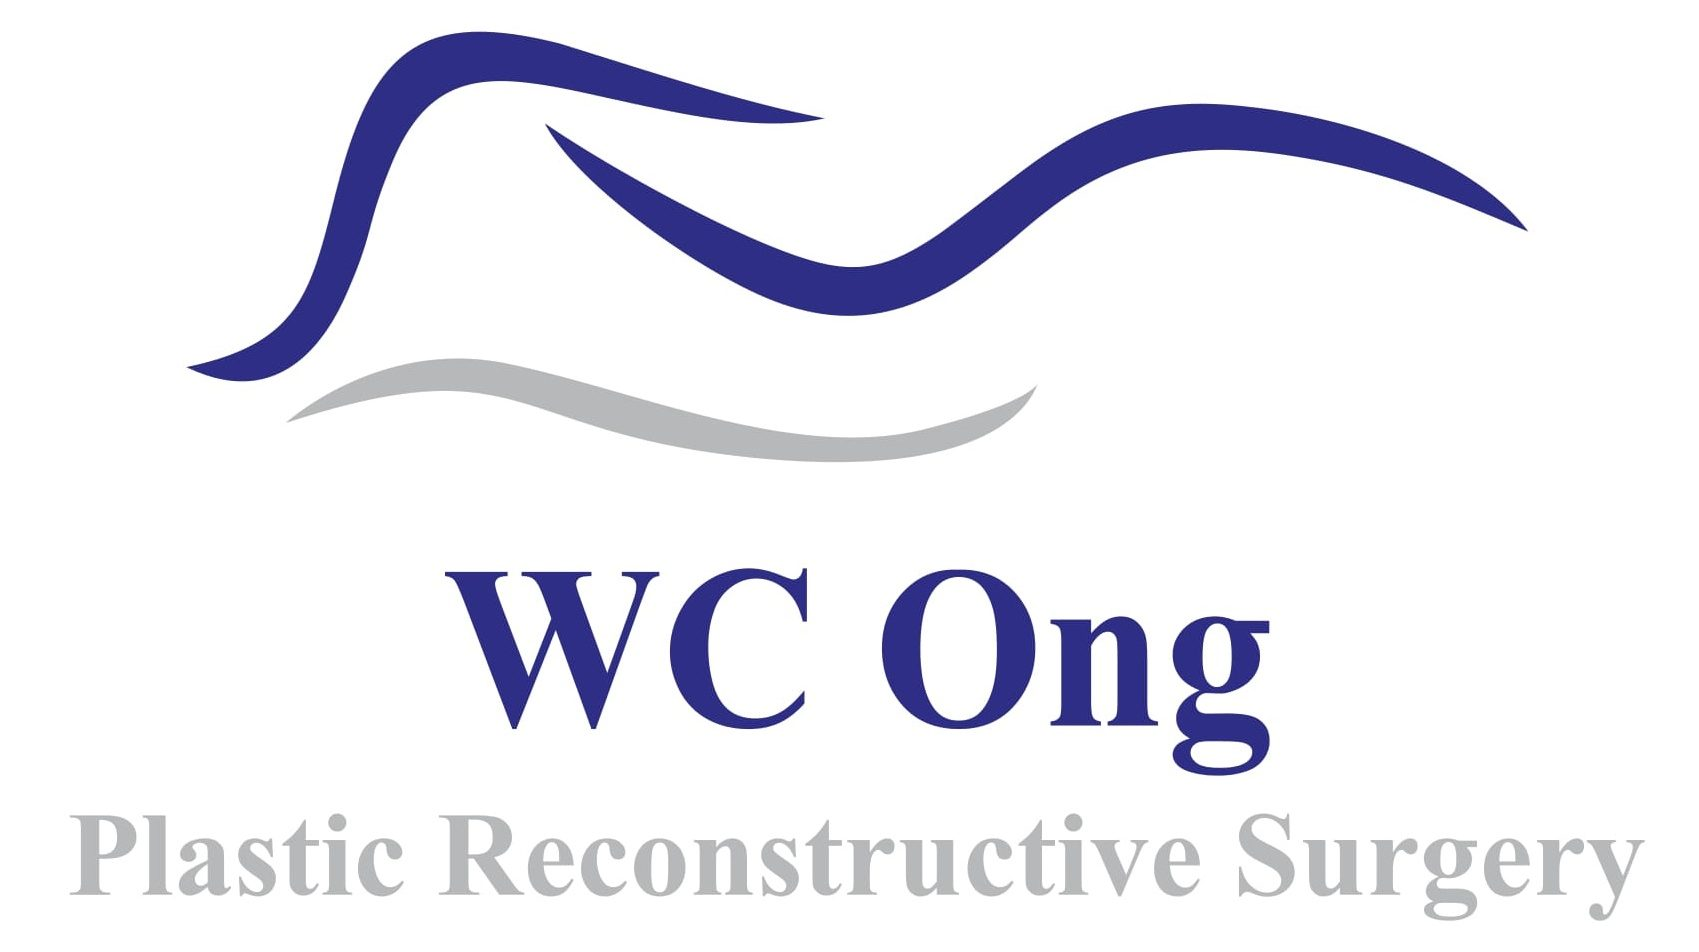 Cosmetic Plastic Surgery Singapore – Female Plastic Surgeon, Dr WC Ong